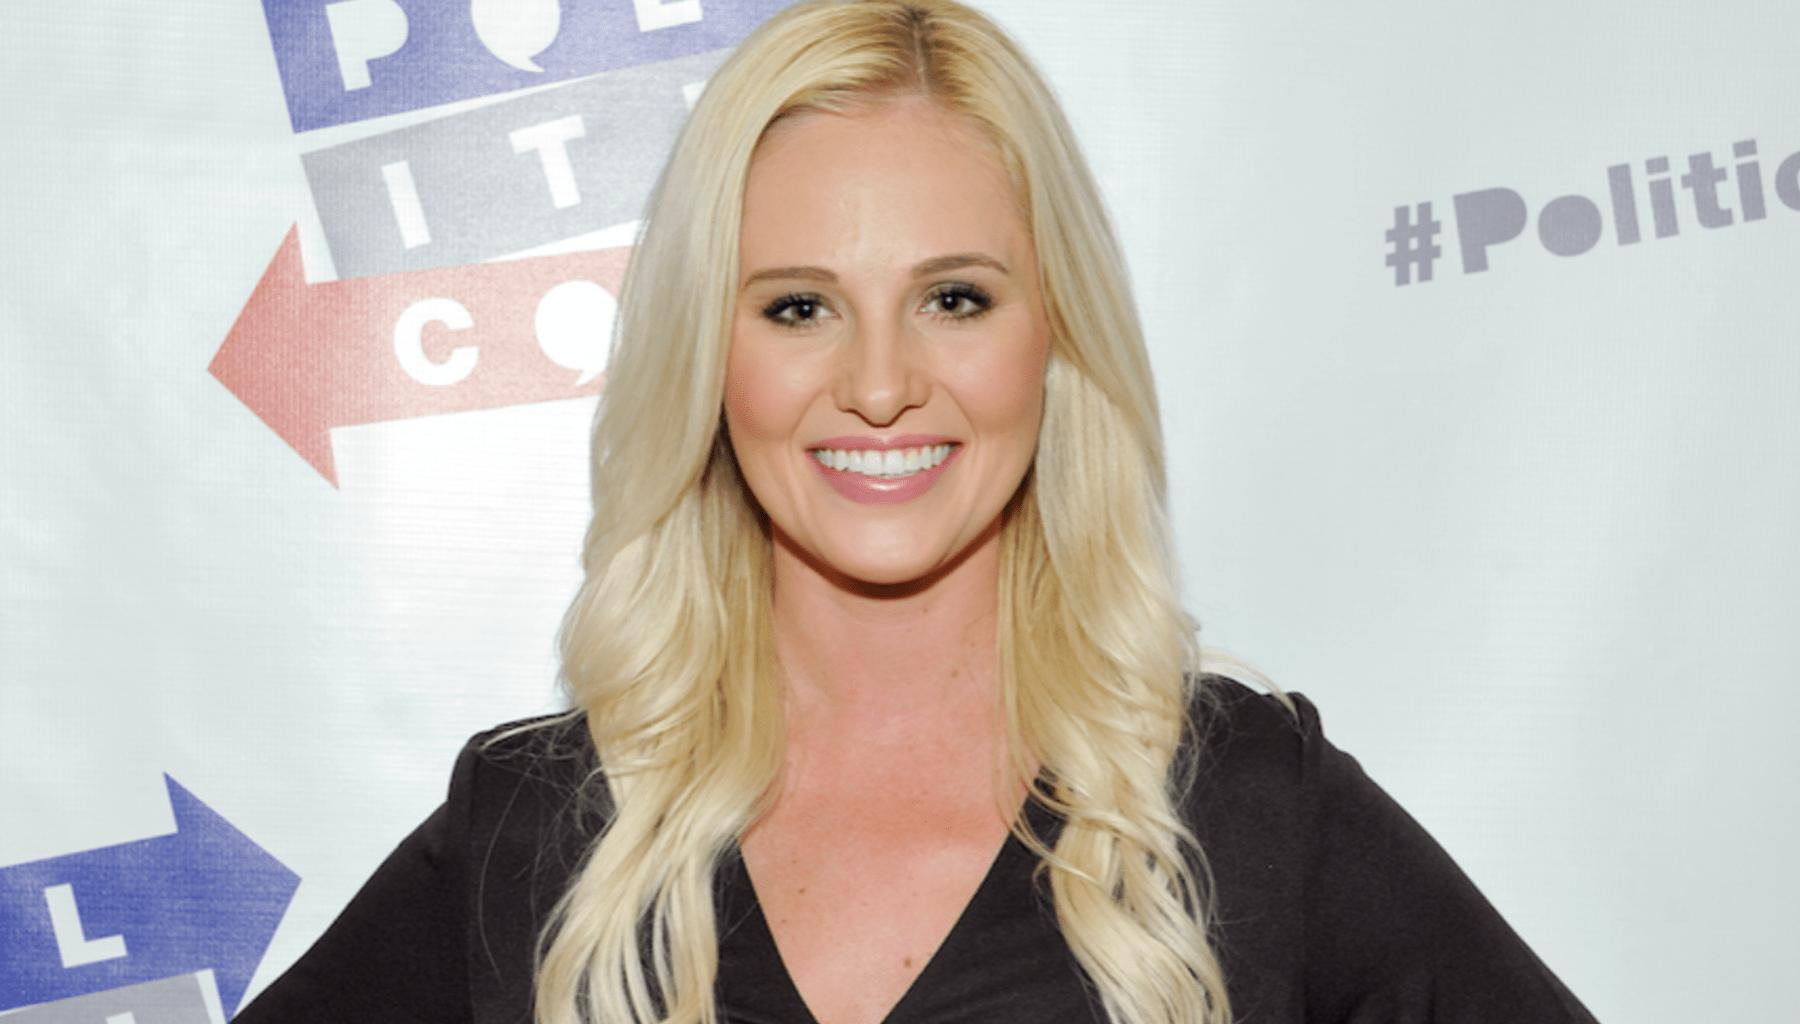 Tomi Lahren Got On The Game's Nerves With Her 21 Savage Joke -- The Rapper Will Not Stop Slamming Her On Social Media -- This Unflattering Picture Proves The Feud Is Real